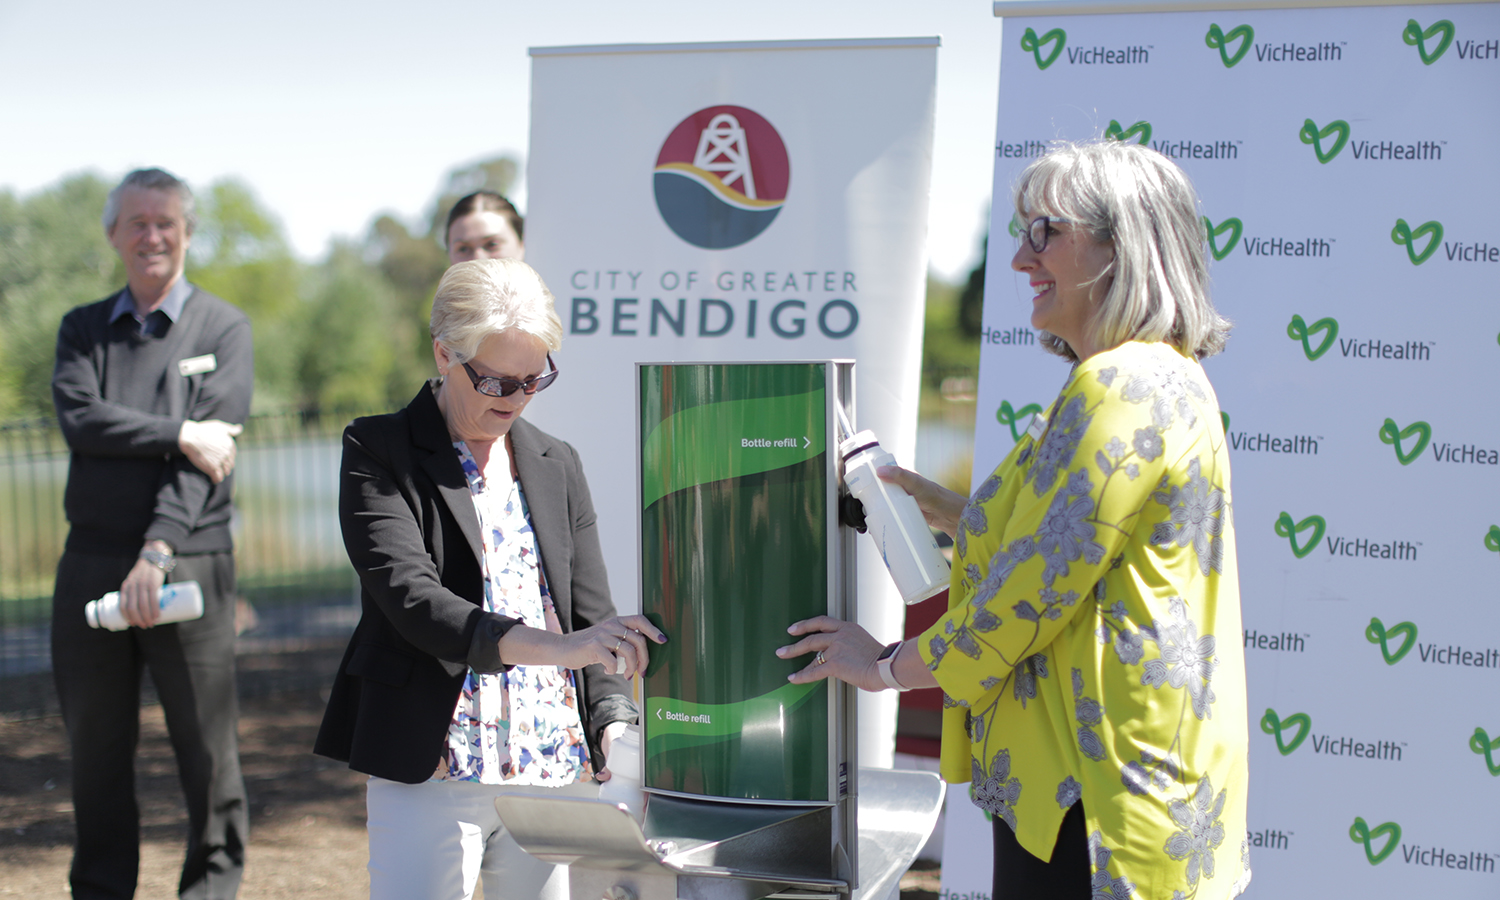 Greater Bendigo West Member Maree Edwards filling up her bottle on the Dual Height Drinking Fountain and Water Filling Station